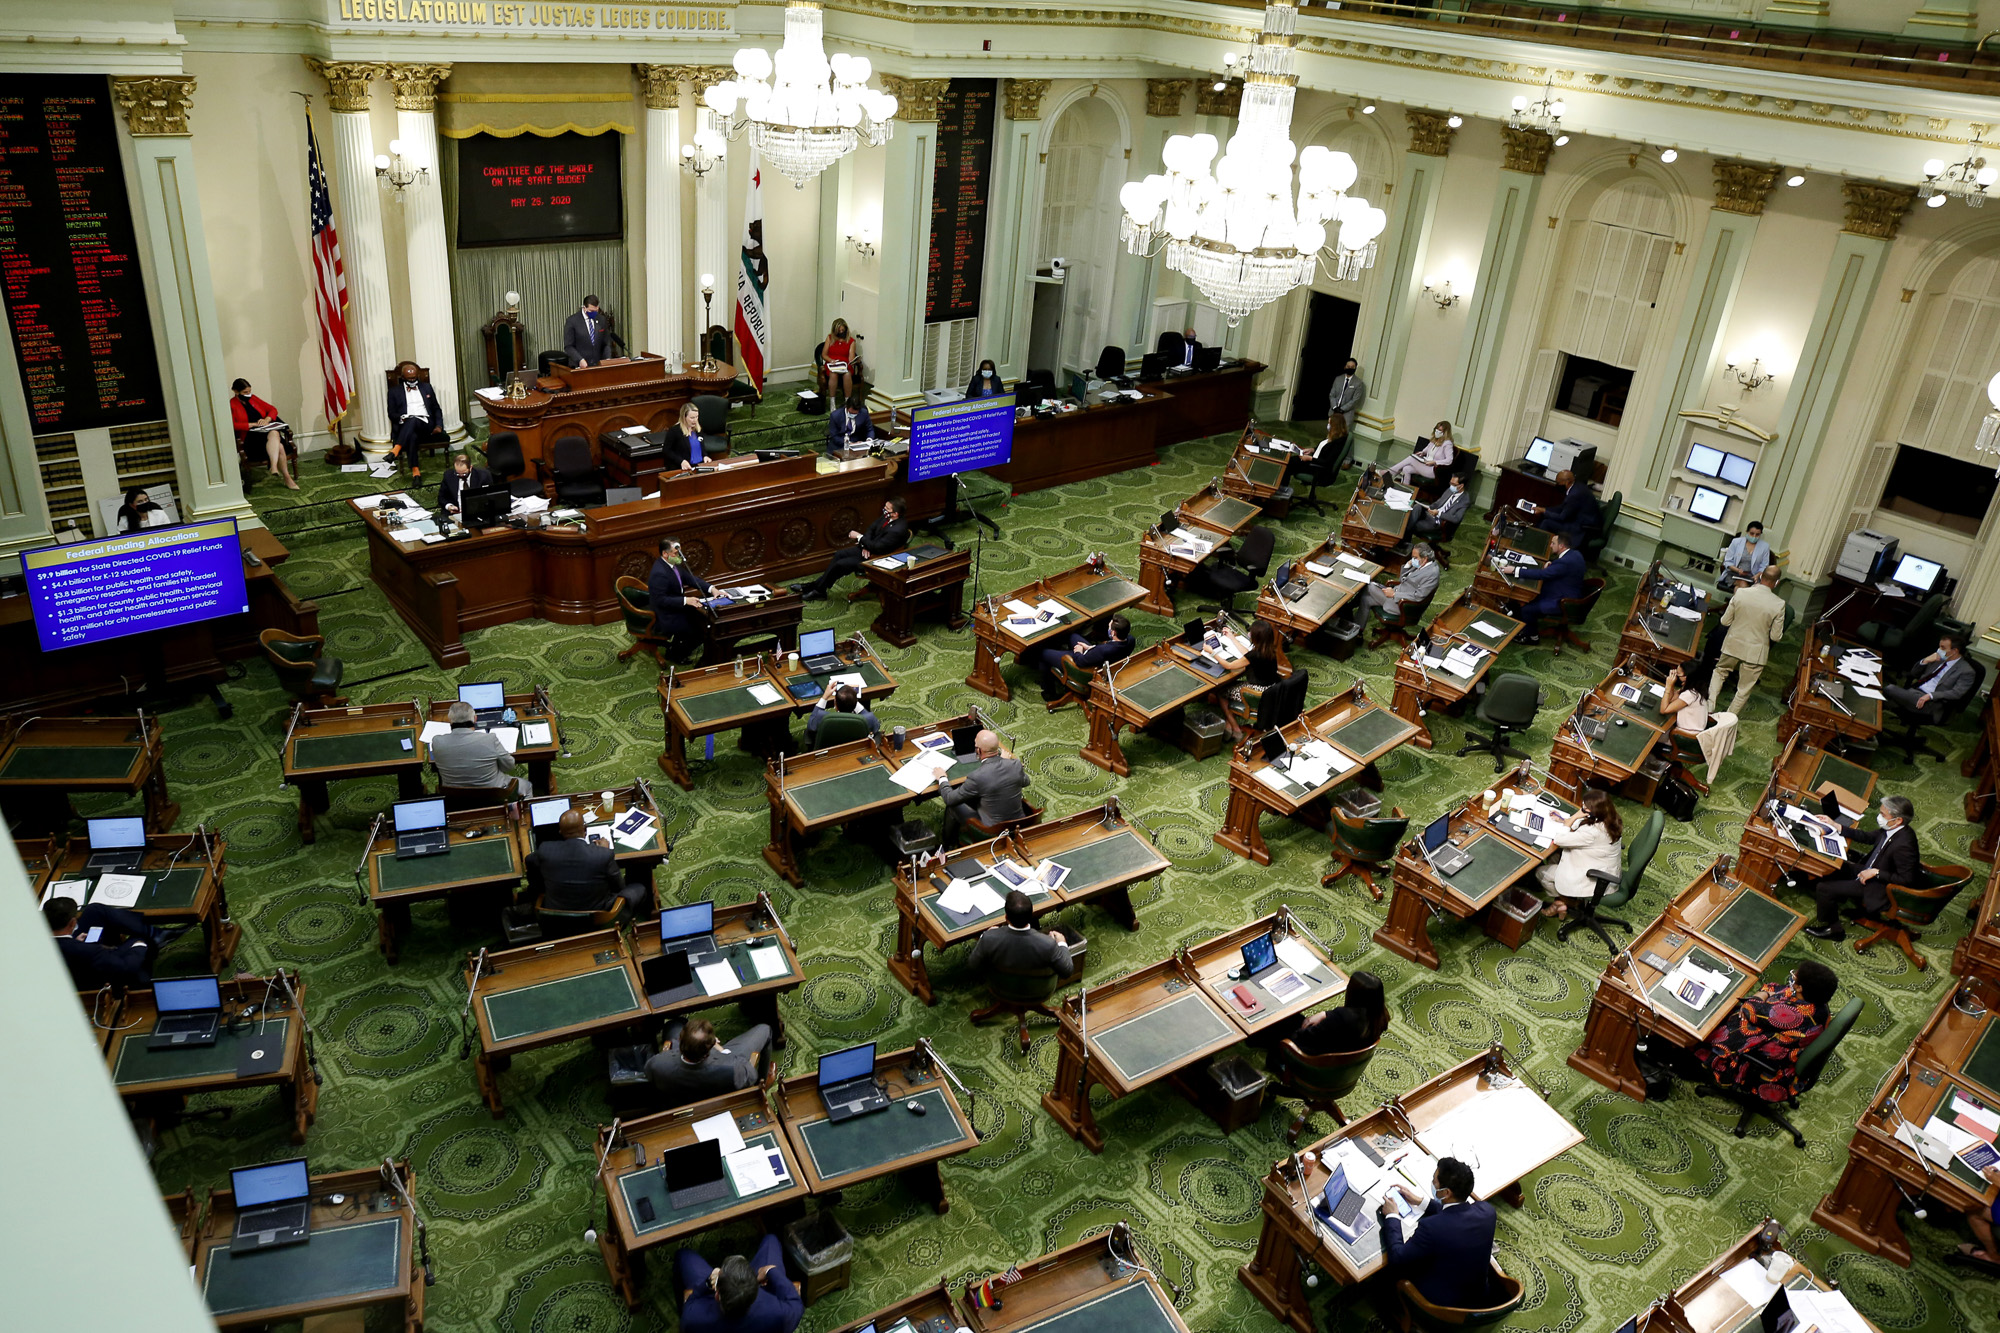 """Members of the state Assembly met as a """"Committee of the Whole on the State Budget"""" to question Gov. Gavin Newsom's administration about its plan to fill an estimated $54.3 budget deficit because of the coronavirus at the Capitol on May 26, 2020. Photo by Rich Pedroncelli, AP Photo/Pool"""